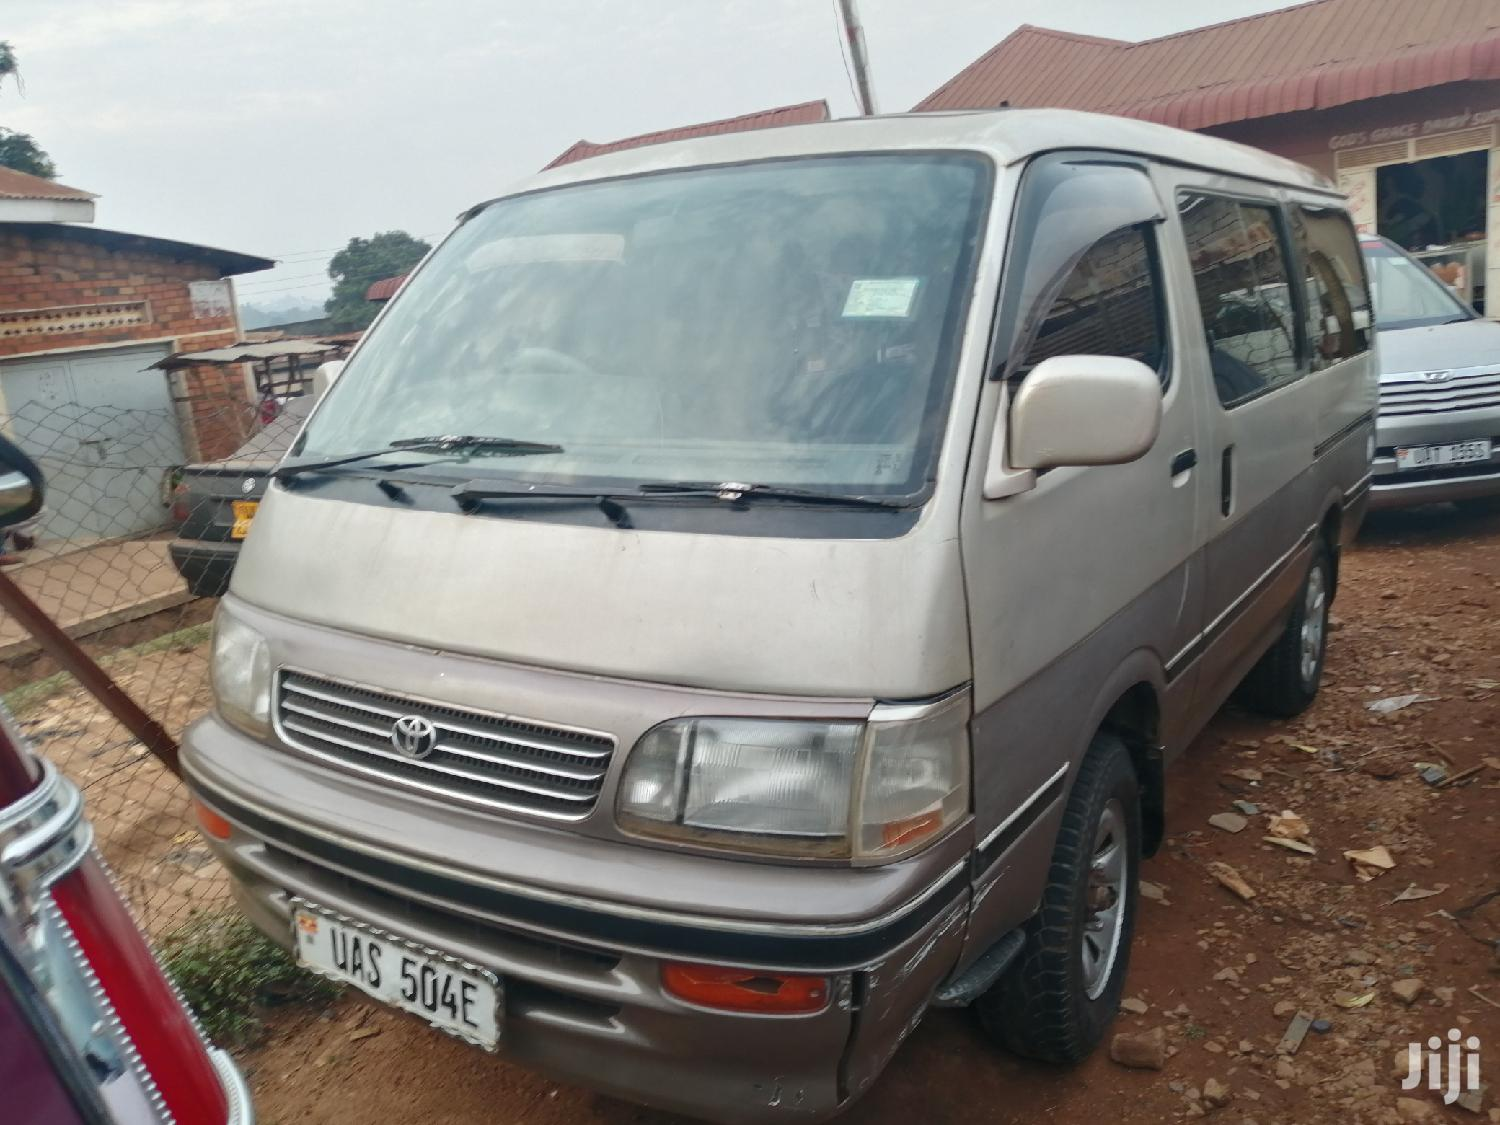 Toyota HiAce 1998 Silver | Buses & Microbuses for sale in Kampala, Central Region, Uganda